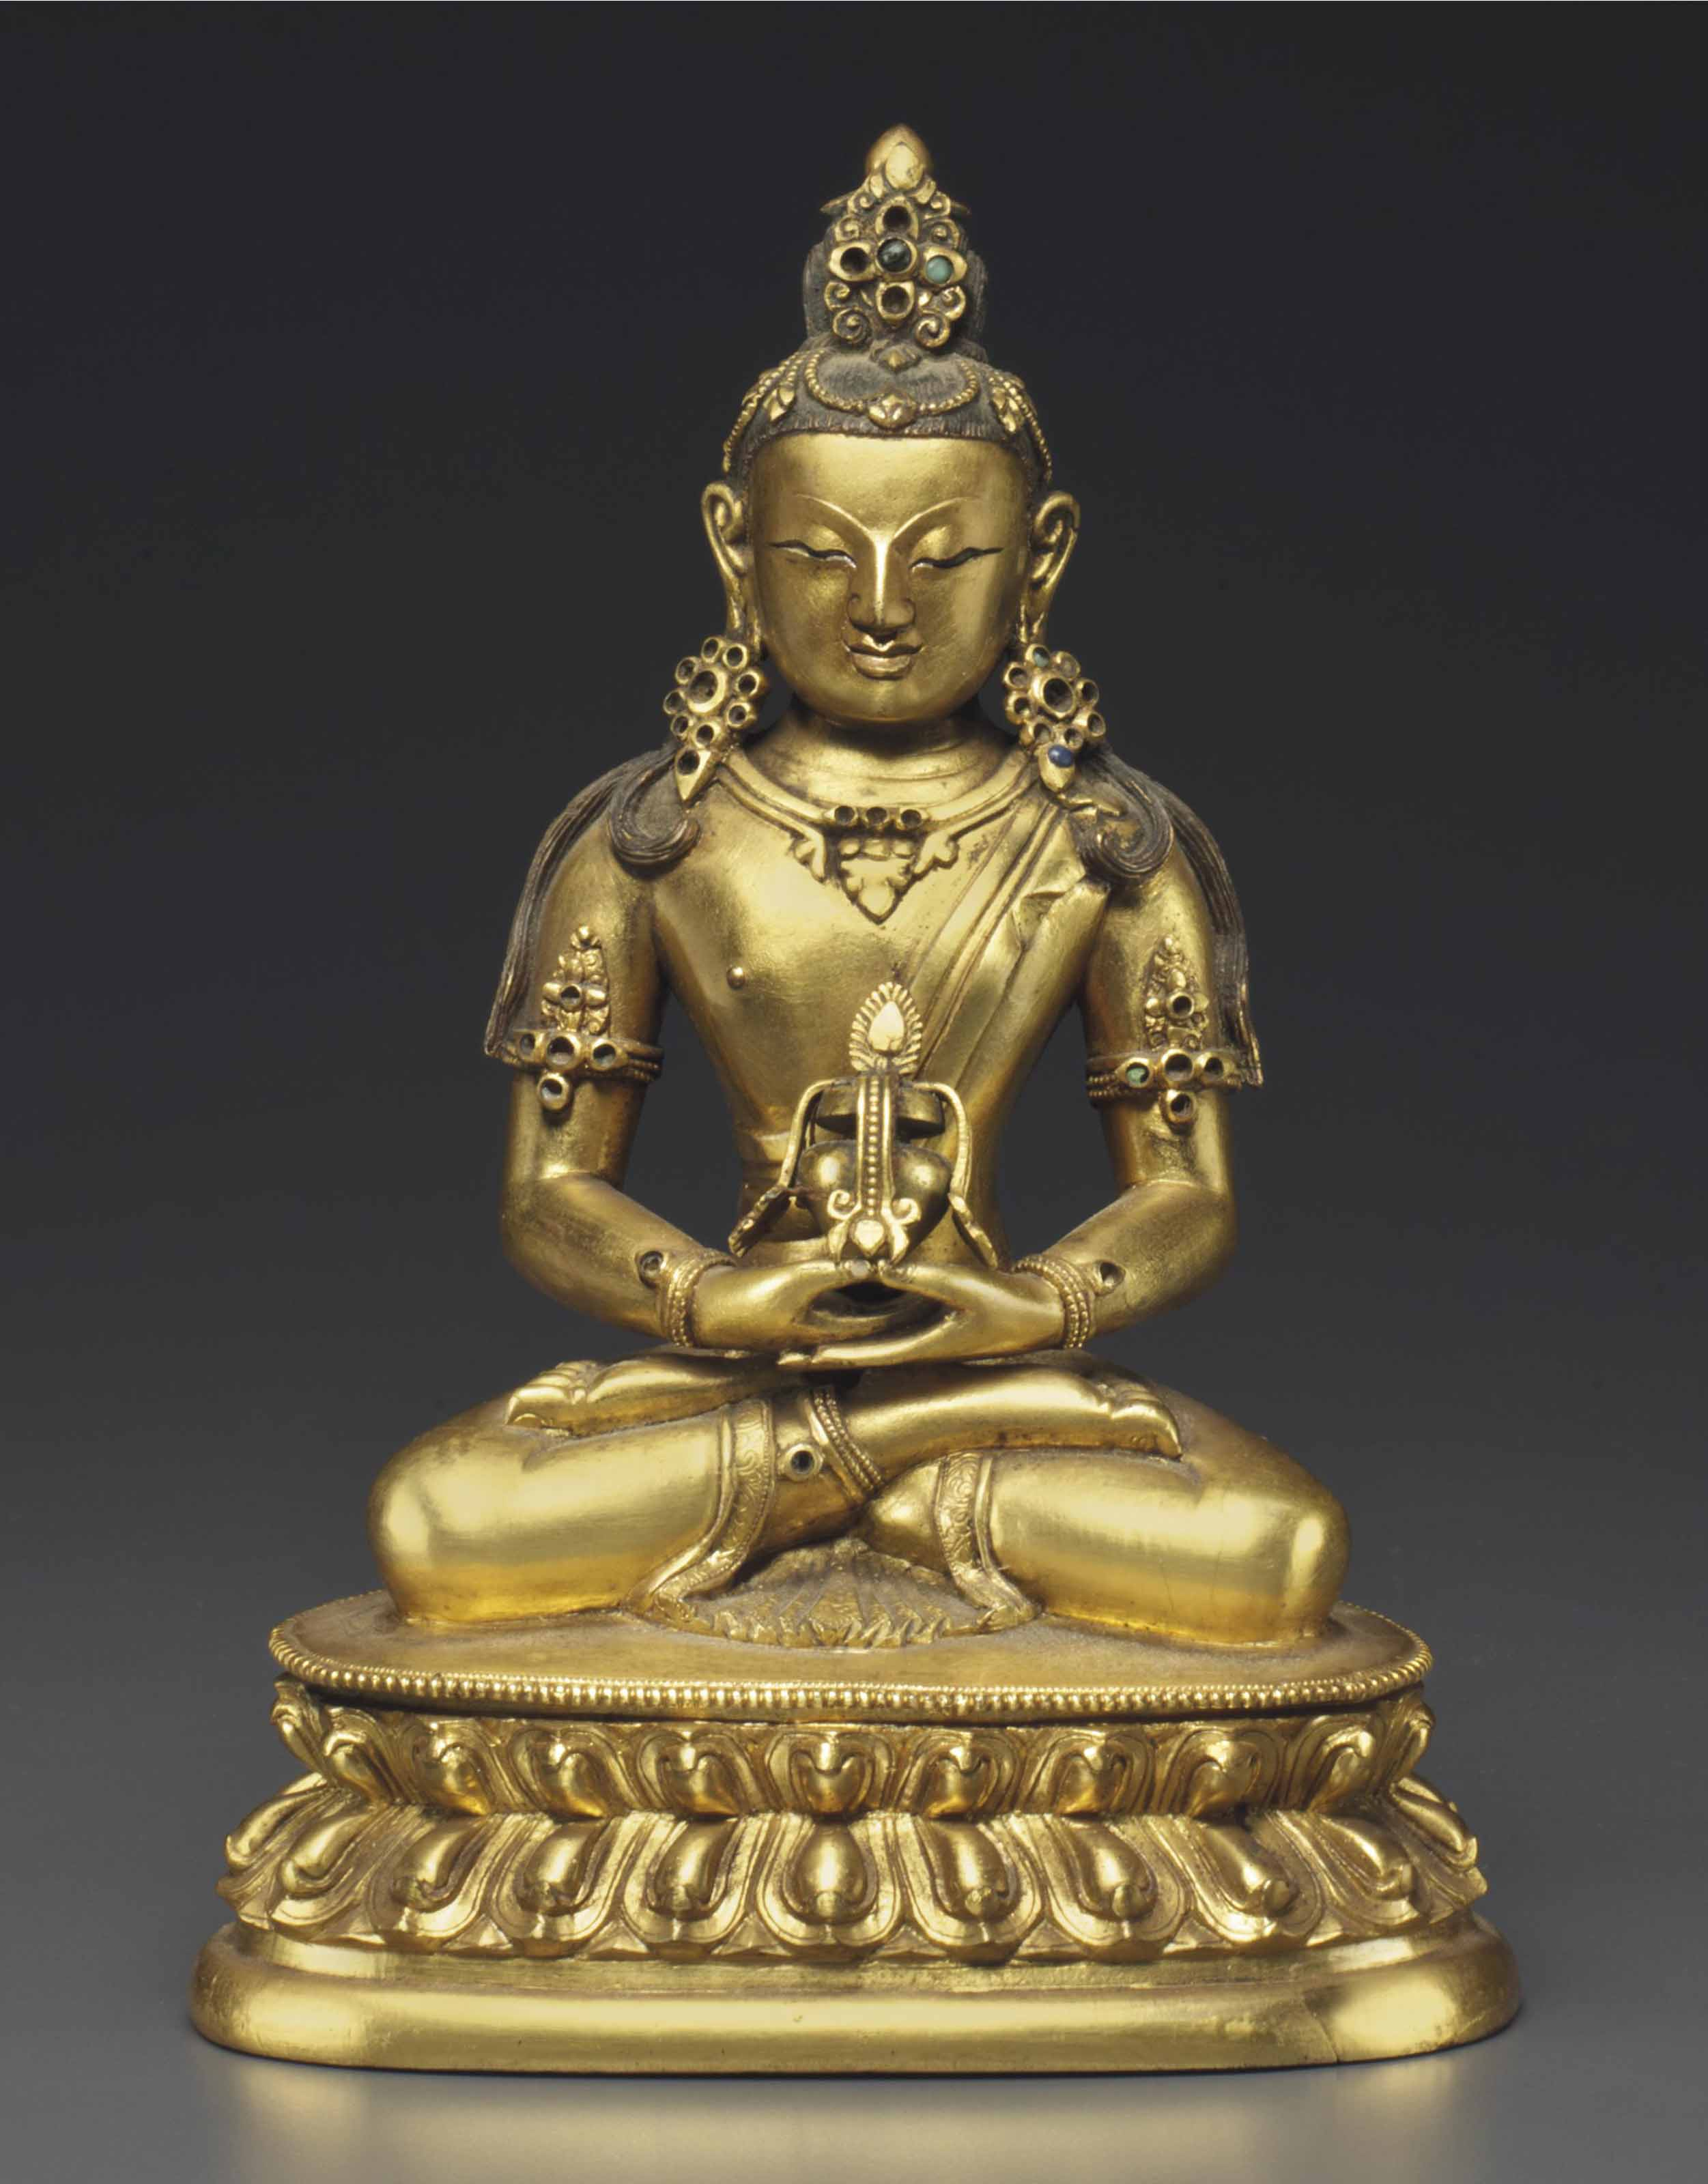 A GILT-BRONZE FIGURE OF AMITAY